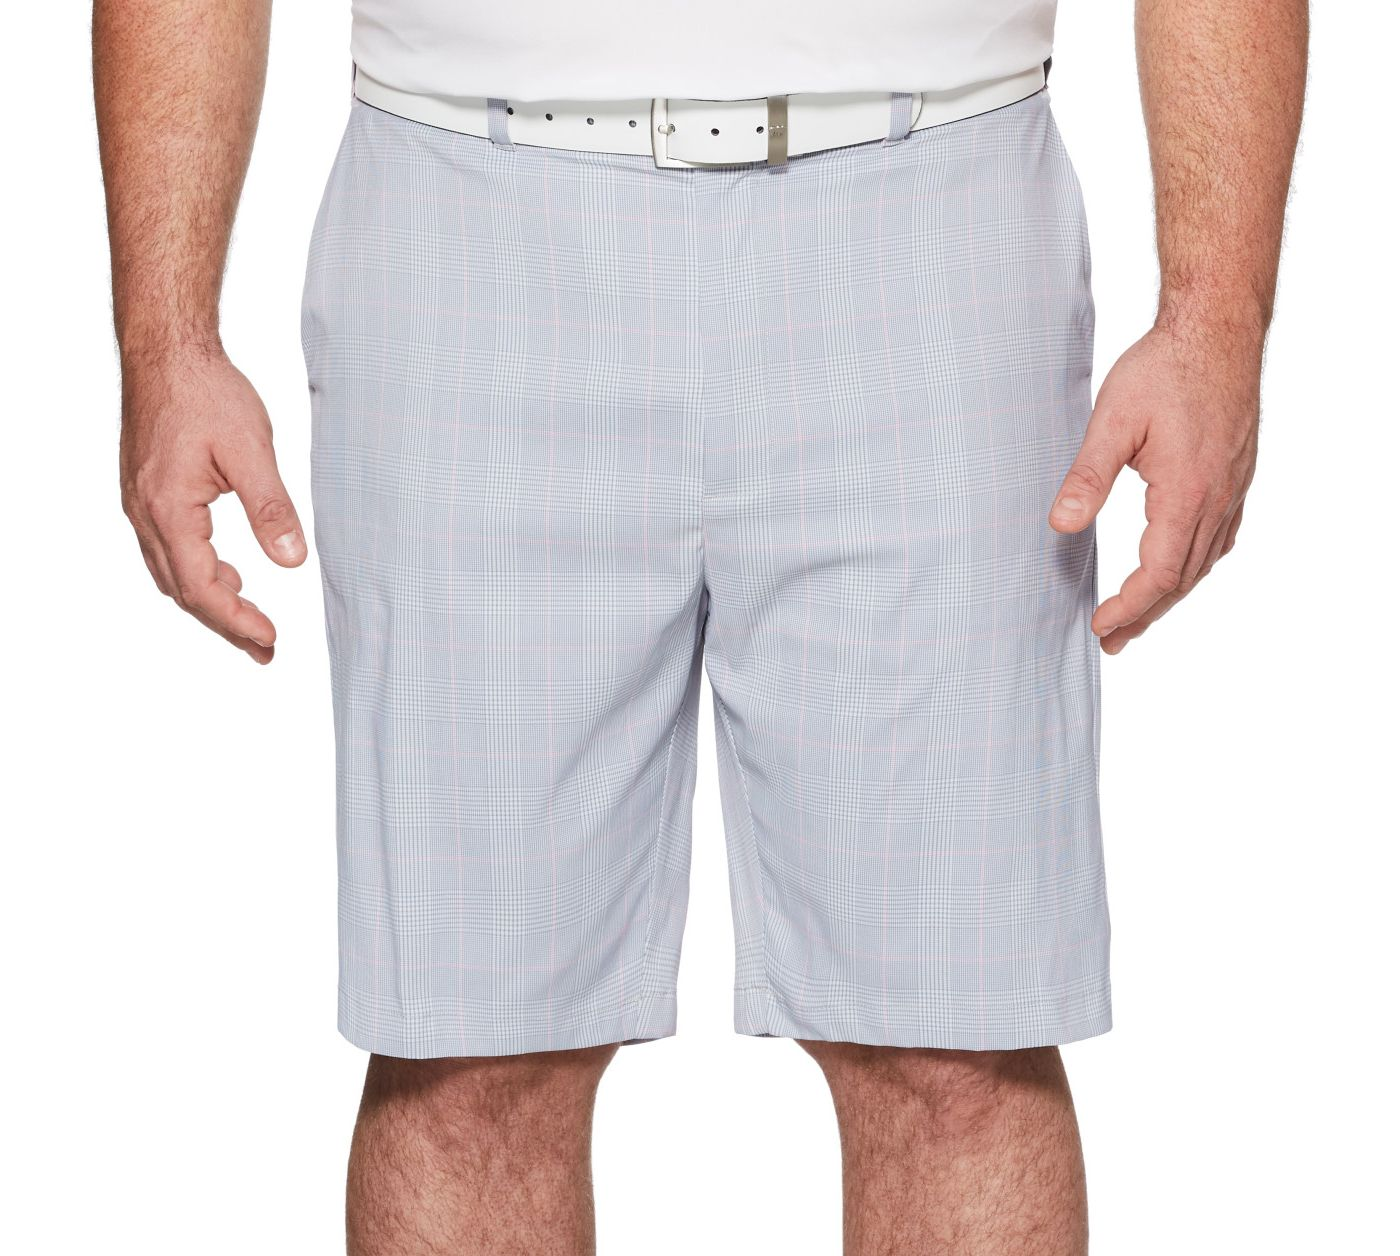 Callaway Men's Glen Plaid Golf Shorts - Big & Tall